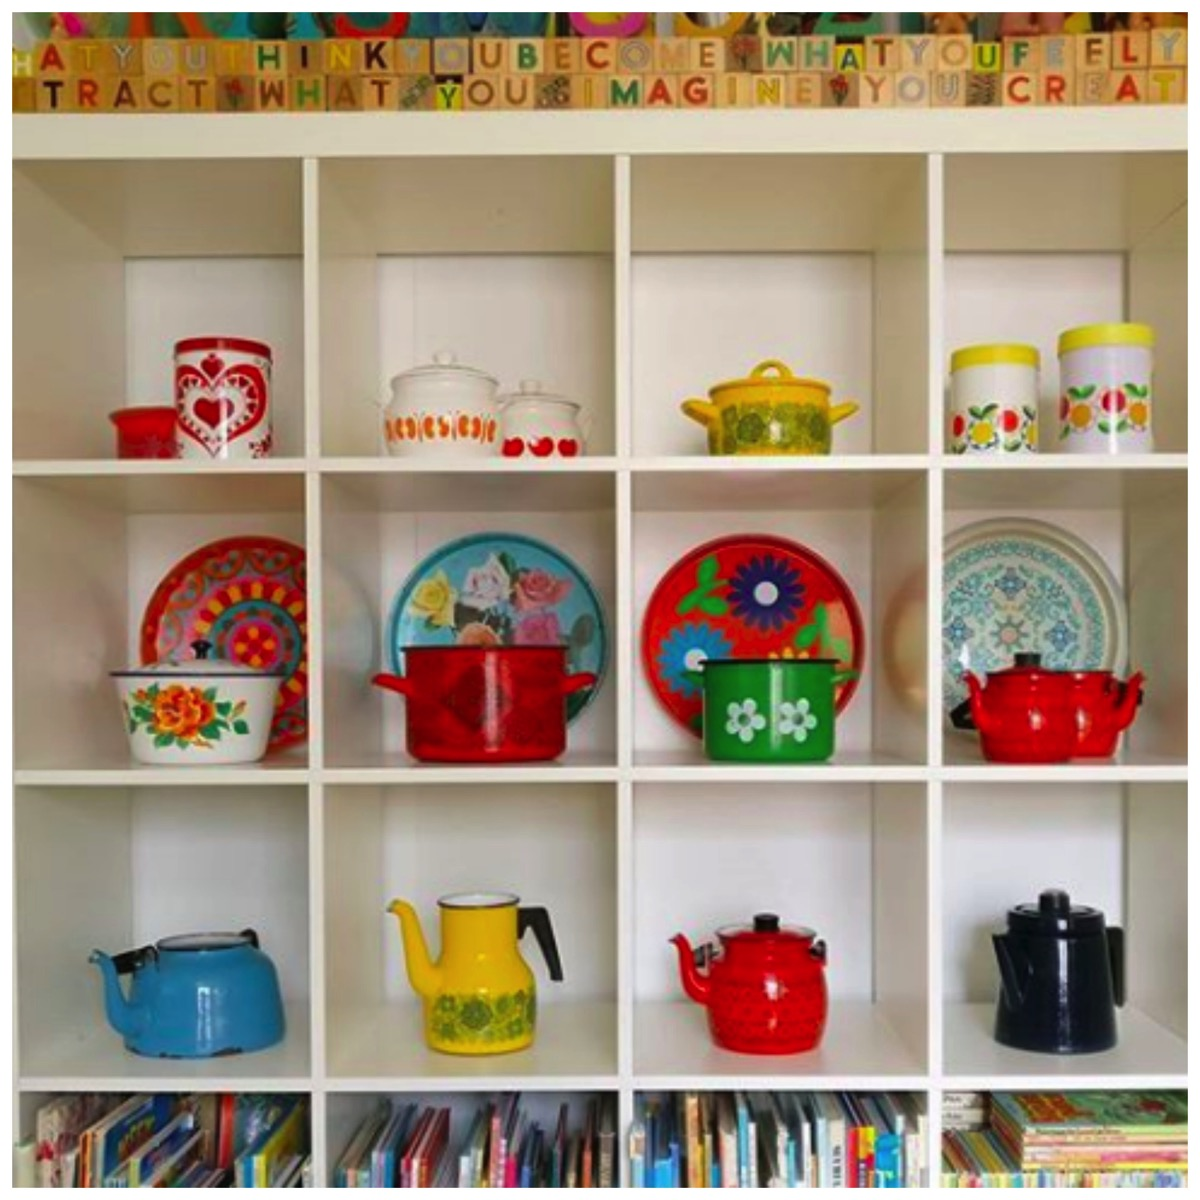 Colorful retro vintage shelfie